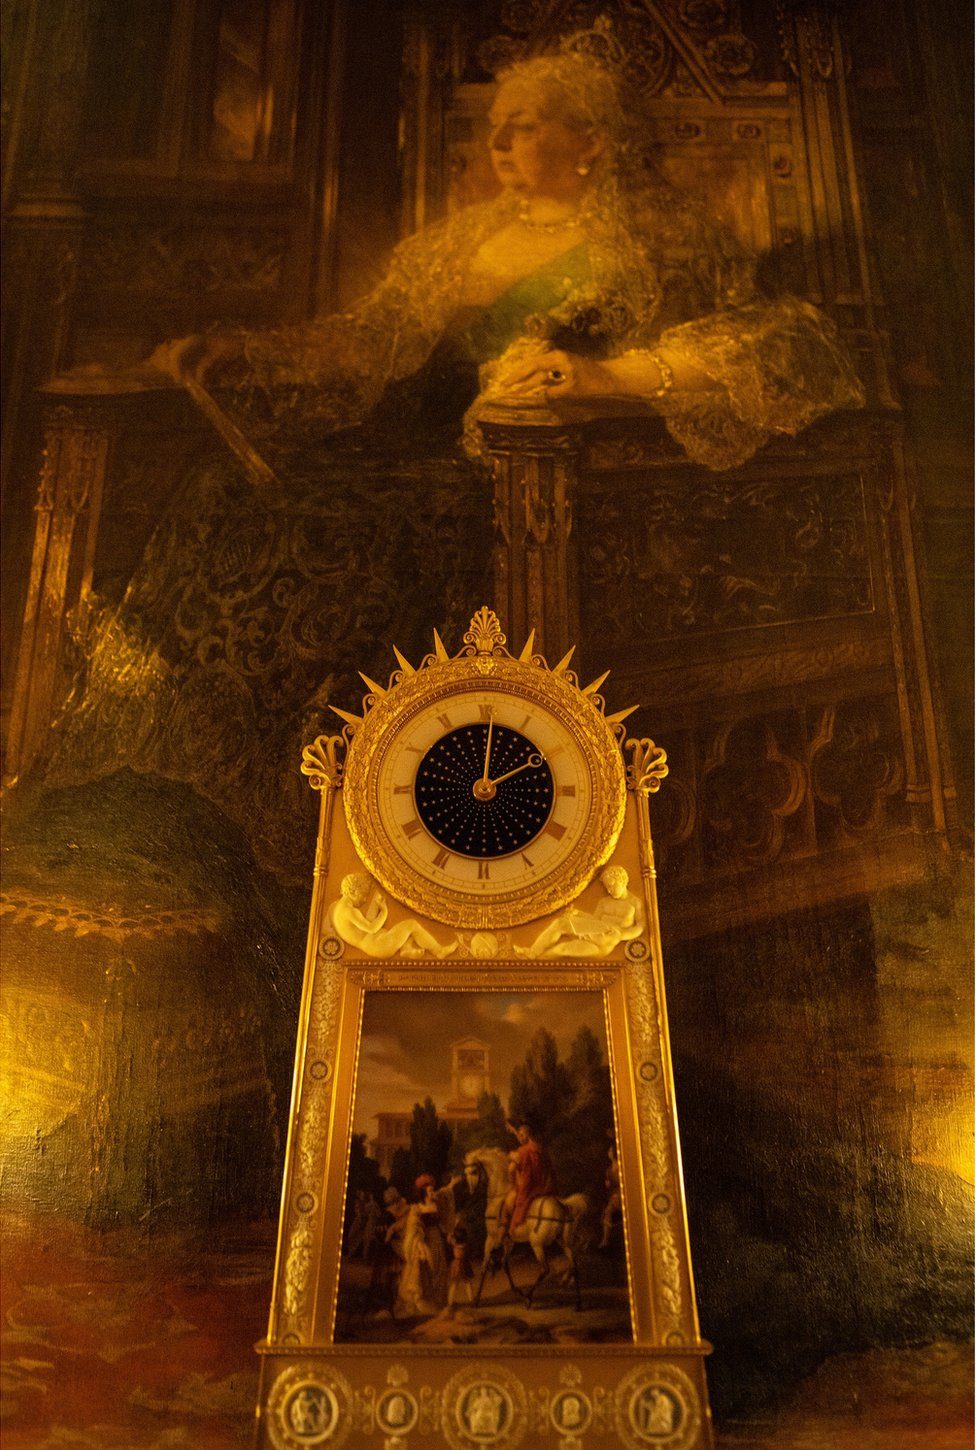 A beautiful clock with a large portrait of Queen Victoria behind it